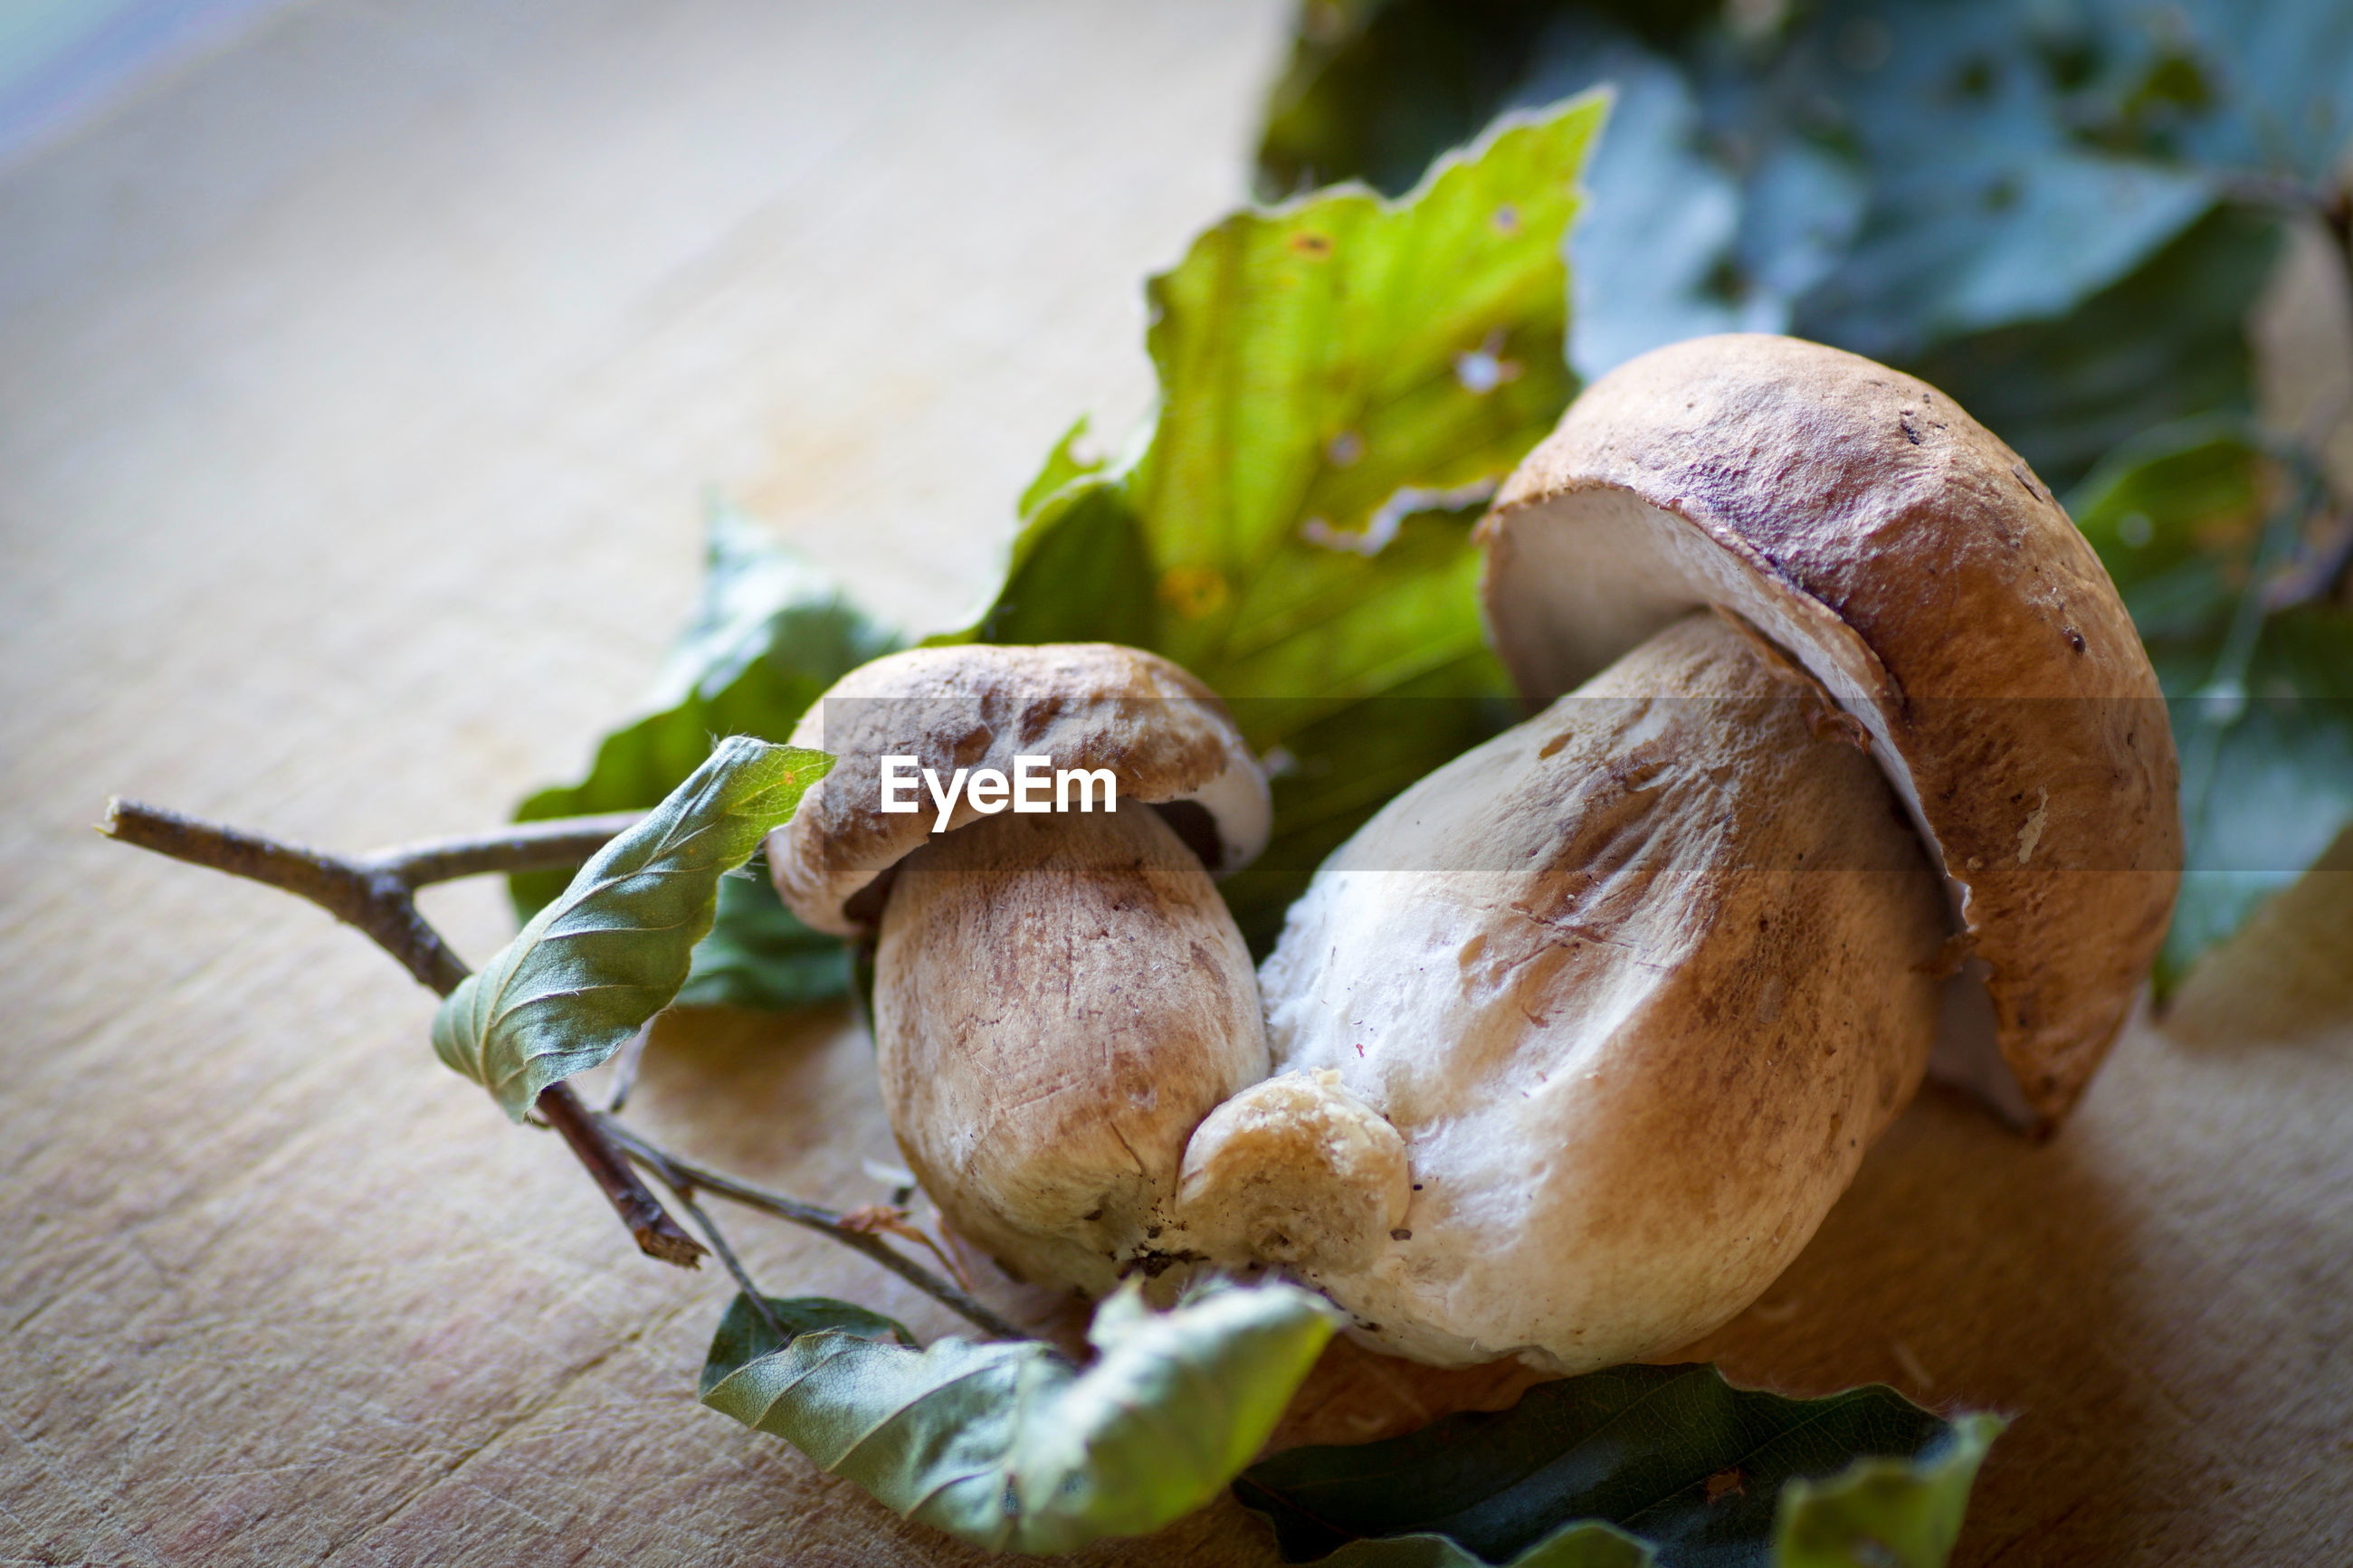 Close-up of edible mushrooms on table